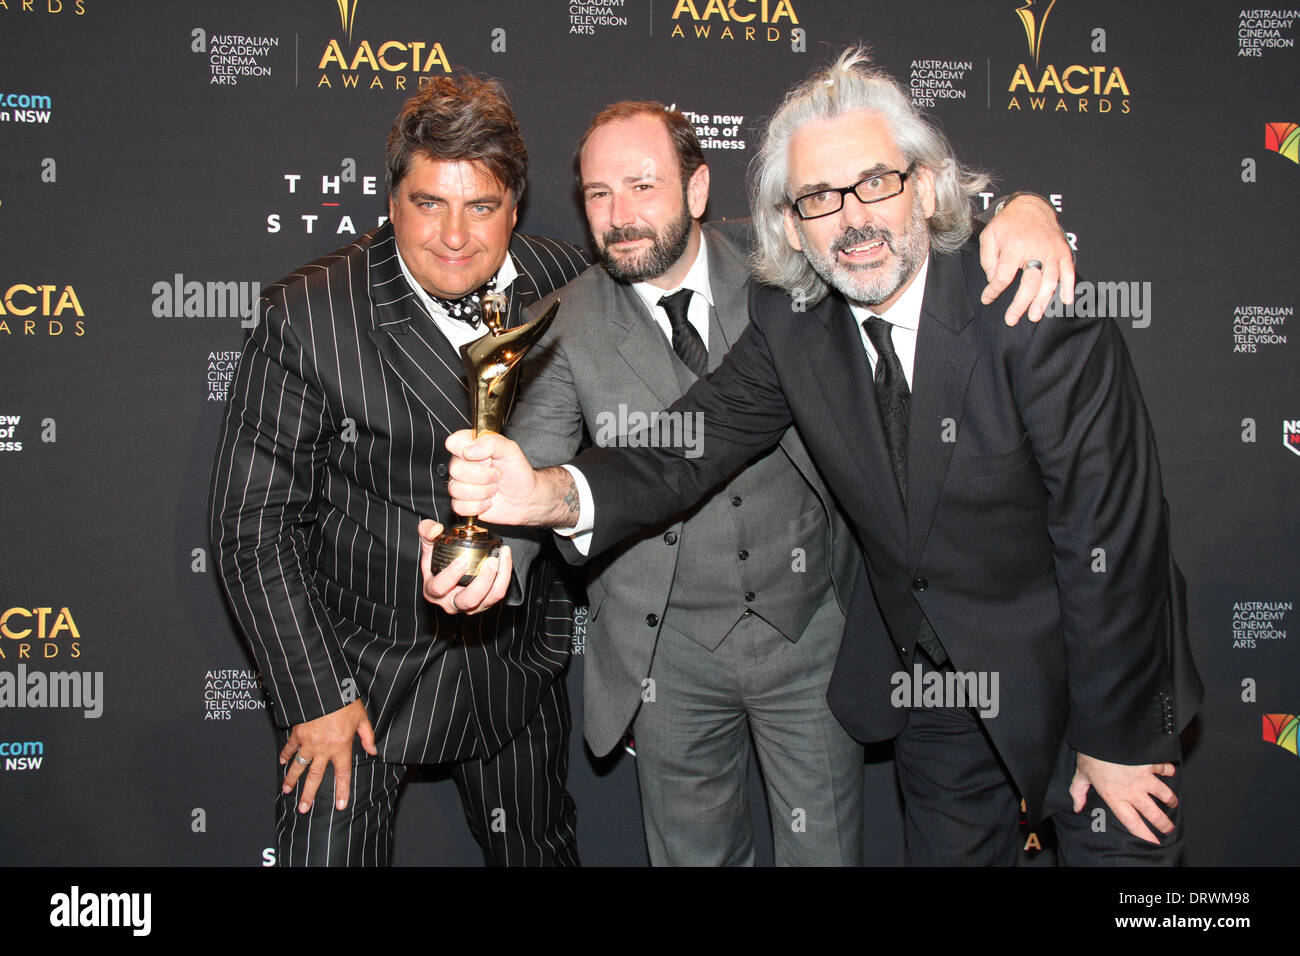 2014 Aacta Award For Best Reality Television Series Masterchef